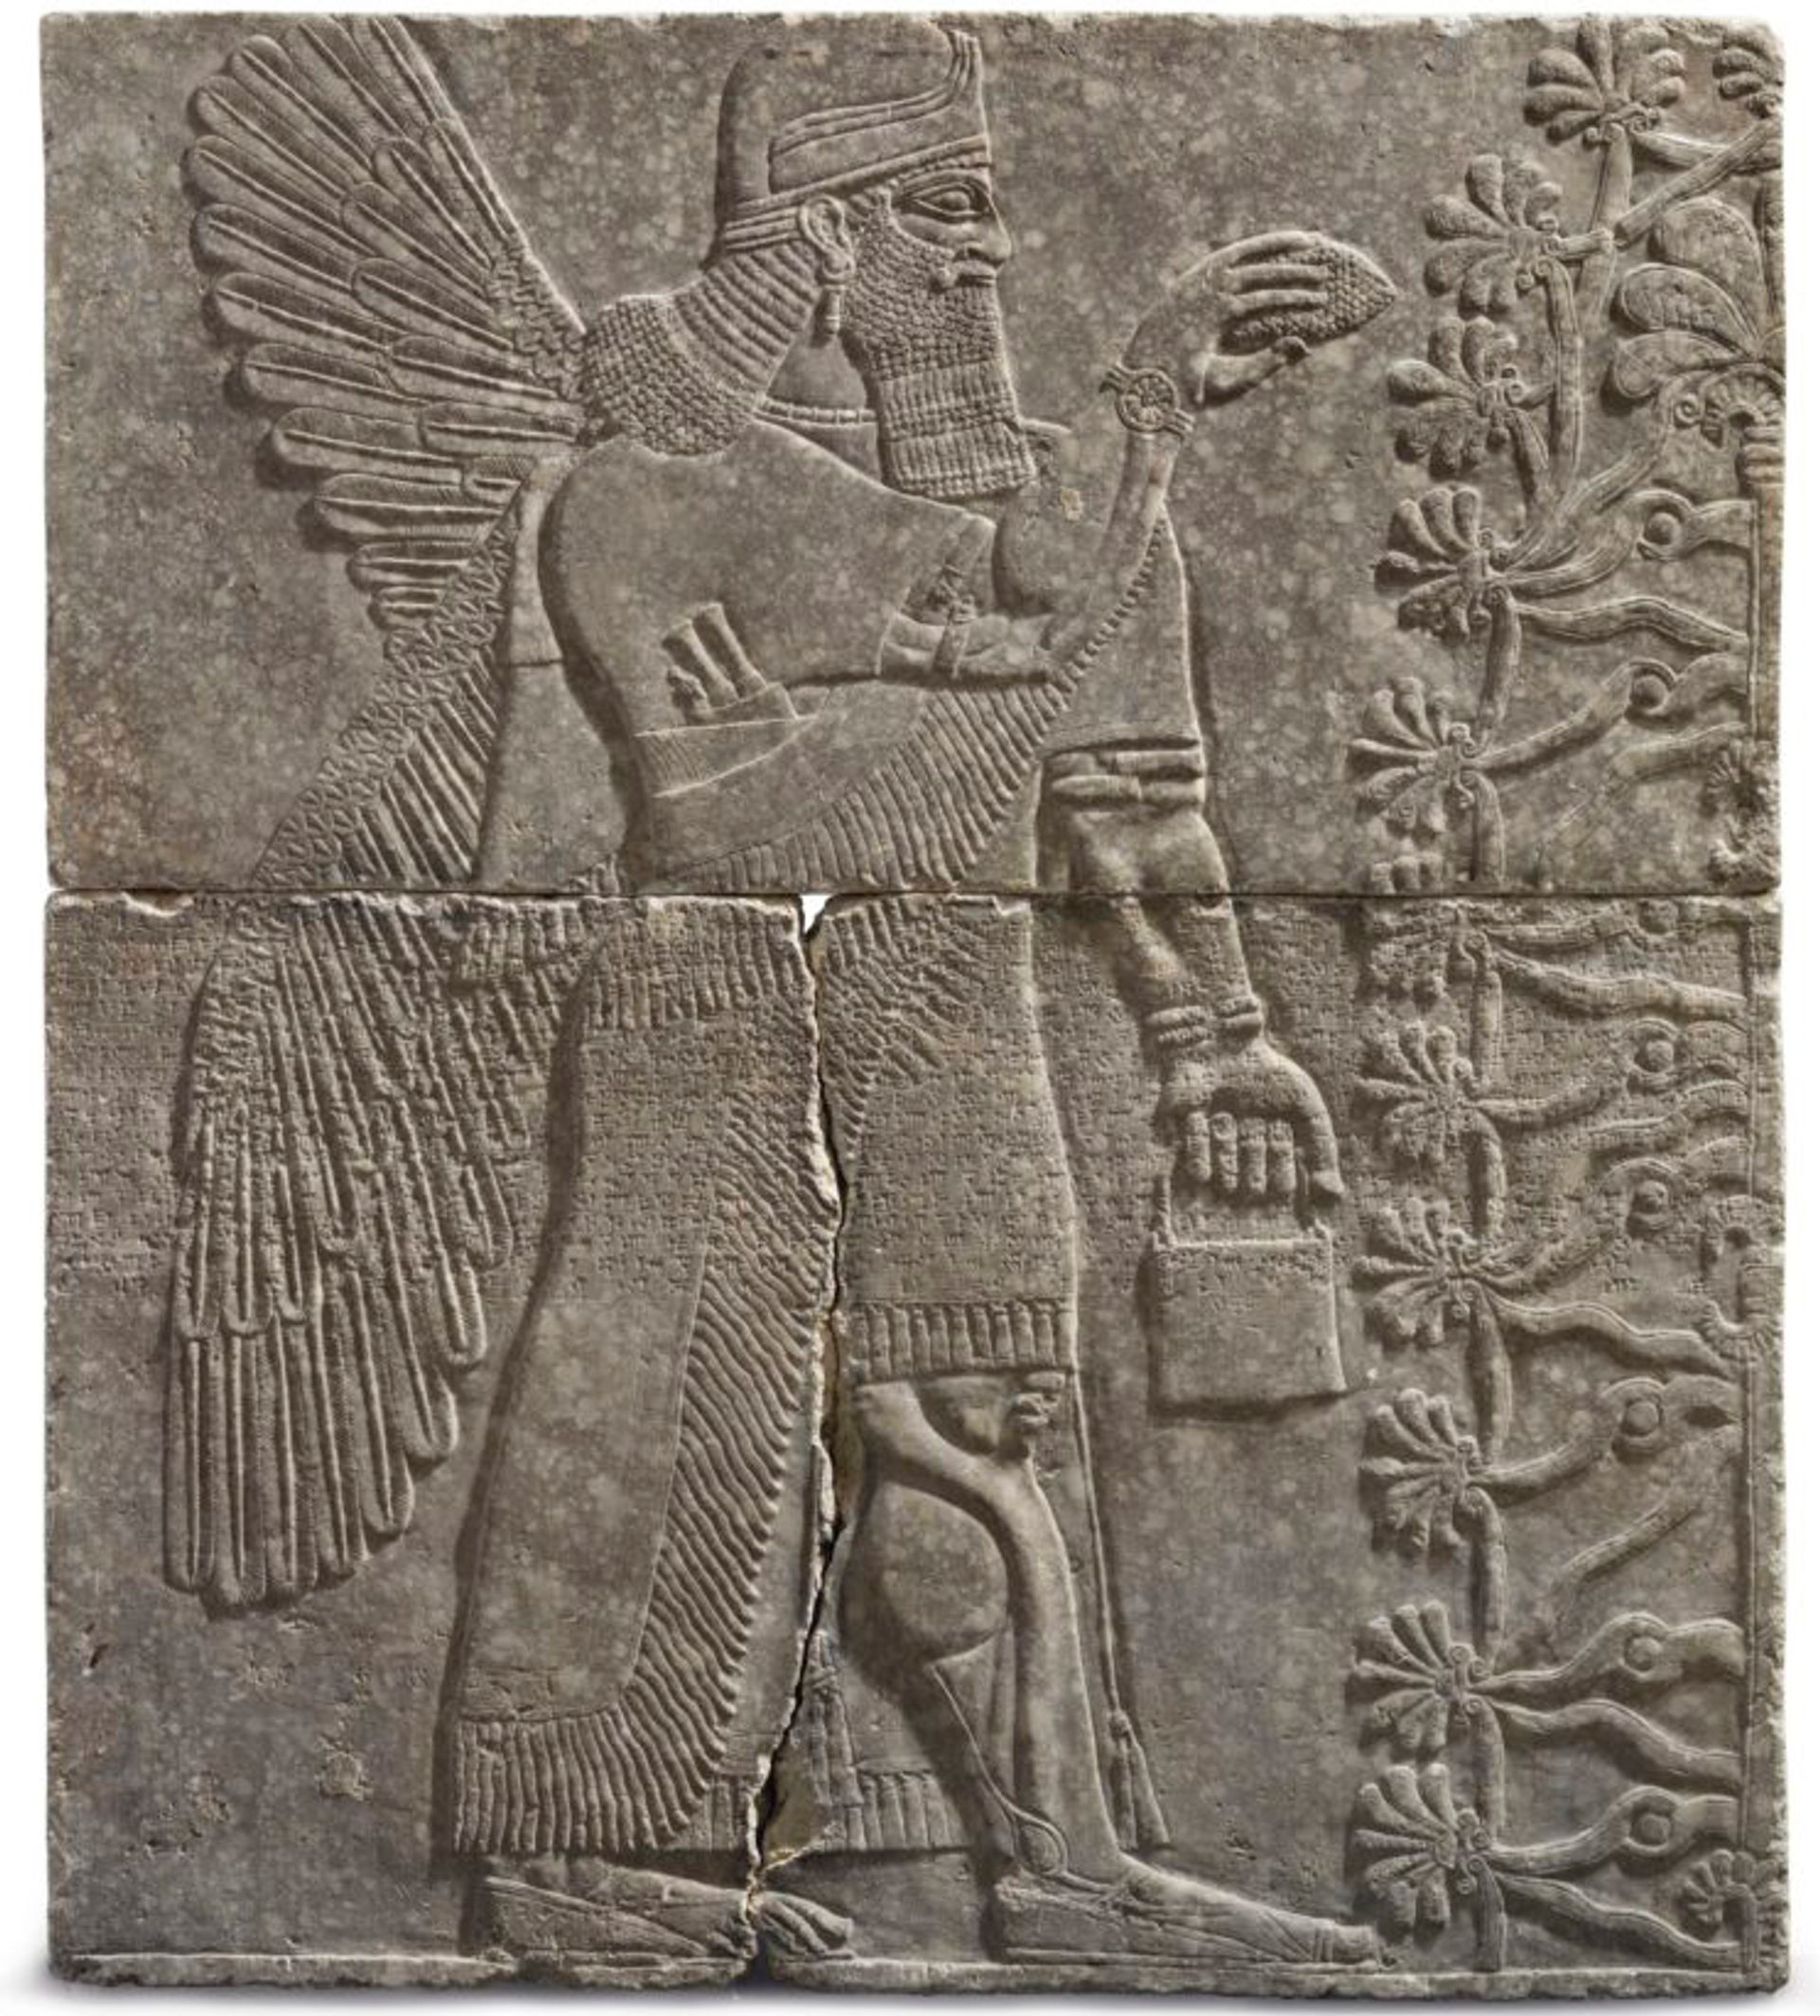 An Assyrian gypsum relief of a Winged Genius sold for $30.1m on 31 October in New York. Courtesy of Christie's Images Ltd 2018.